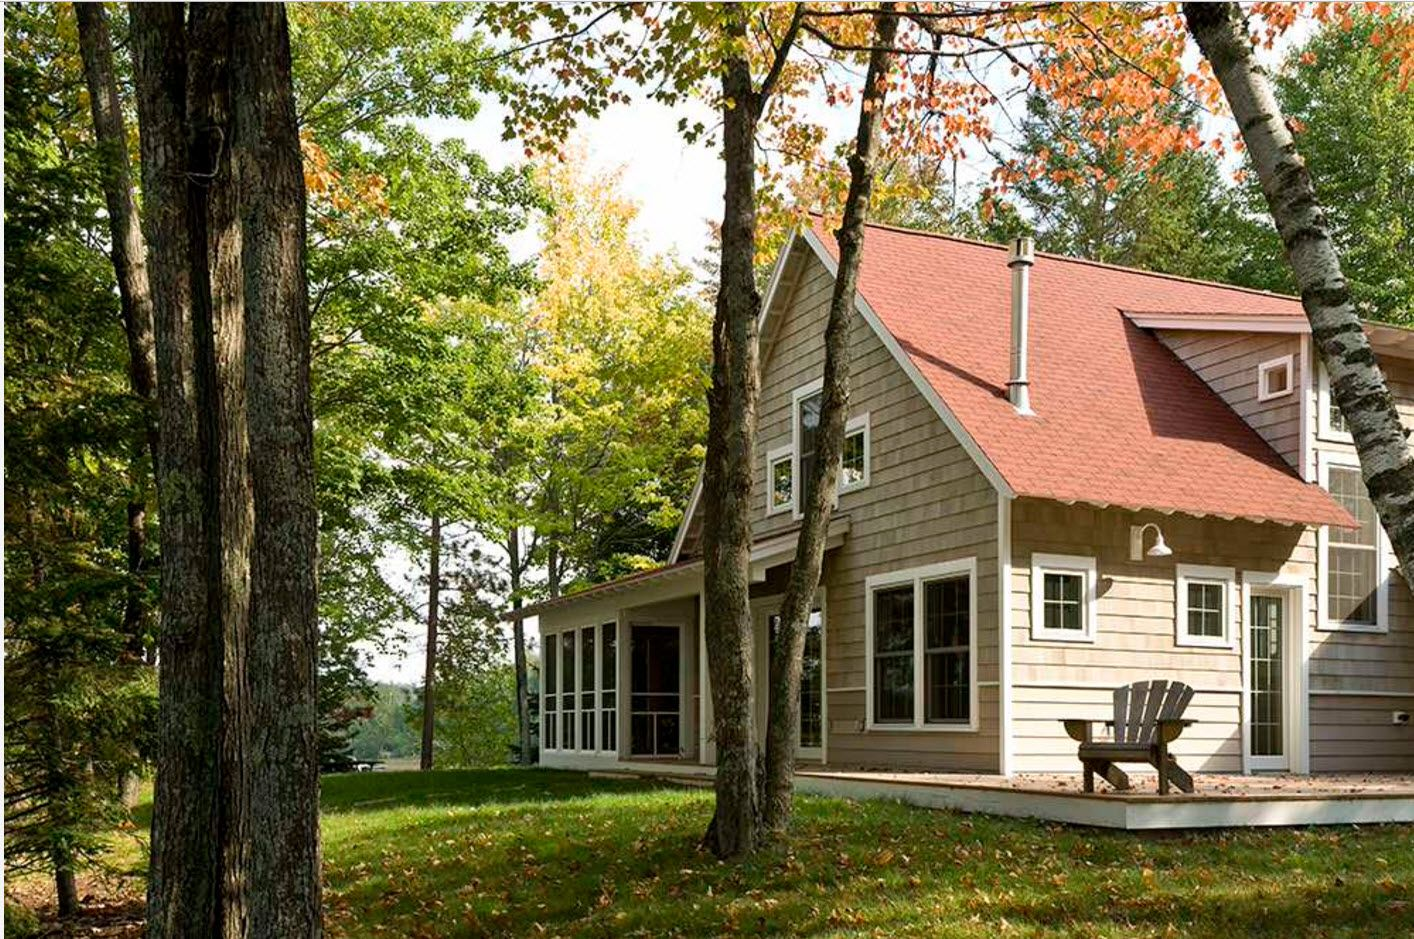 Gorgeous planked suburban house with red shingled roof